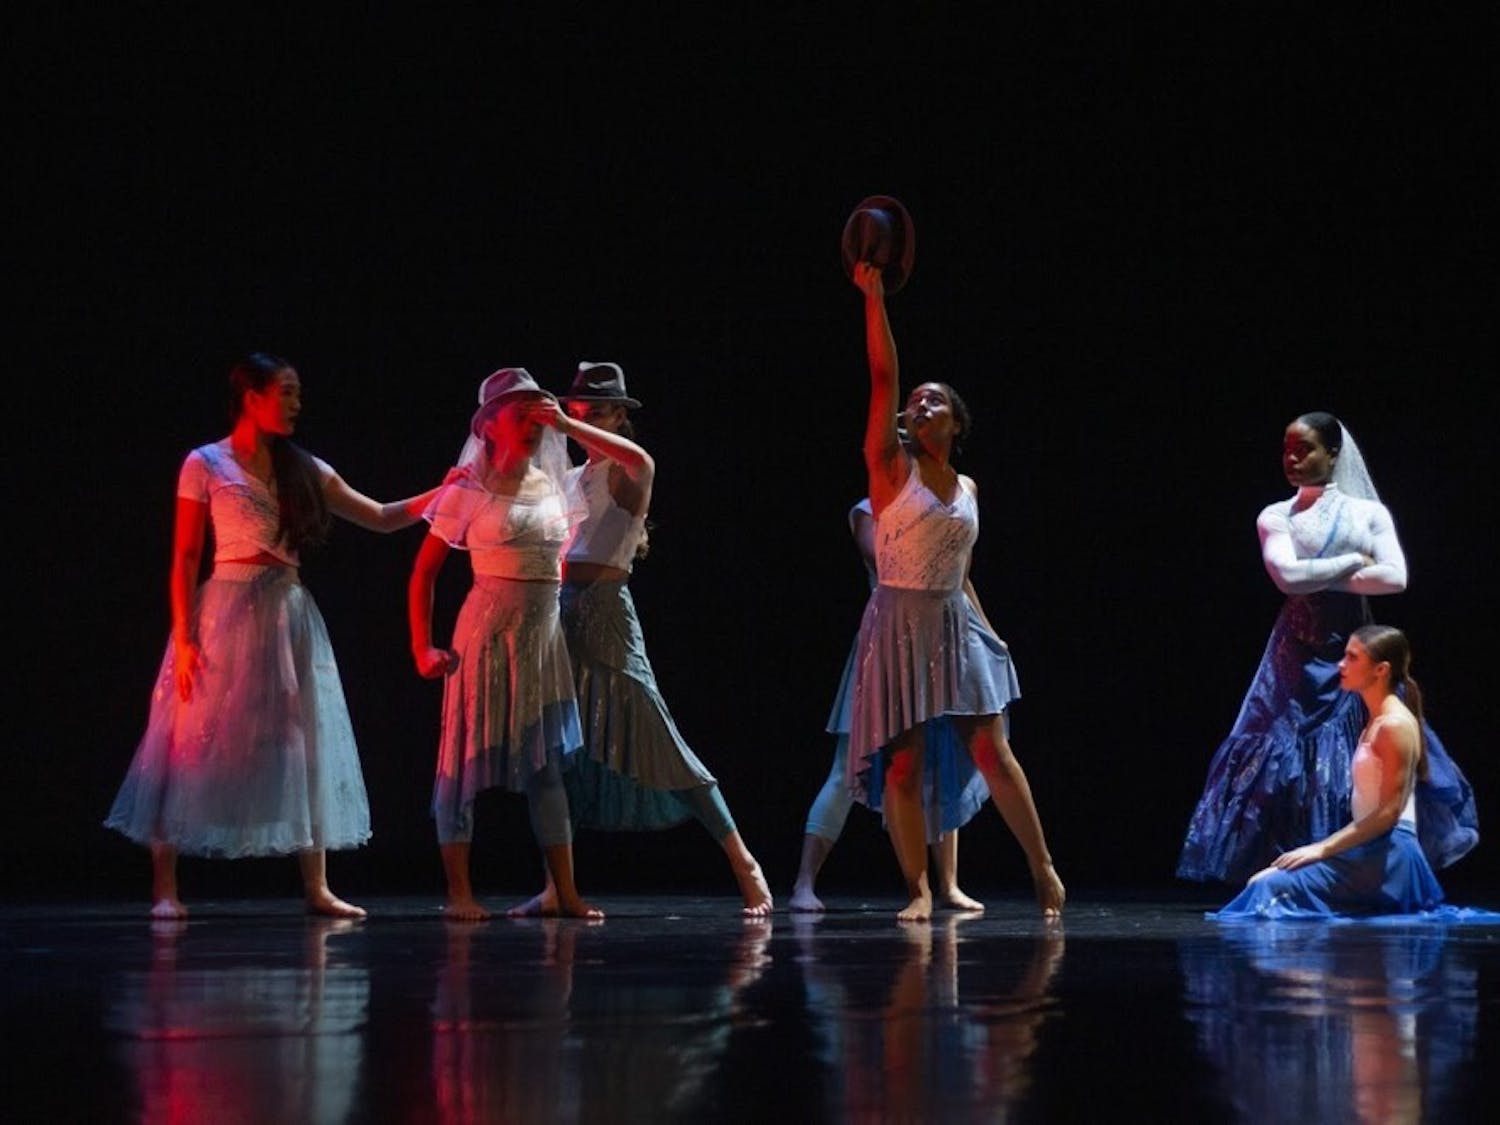 From Zodiaque Dance Company to Slee Hall's Beethoven Quartet, The Spectrum compiled a list of the best theater events happening on campus throughout the spring semester.